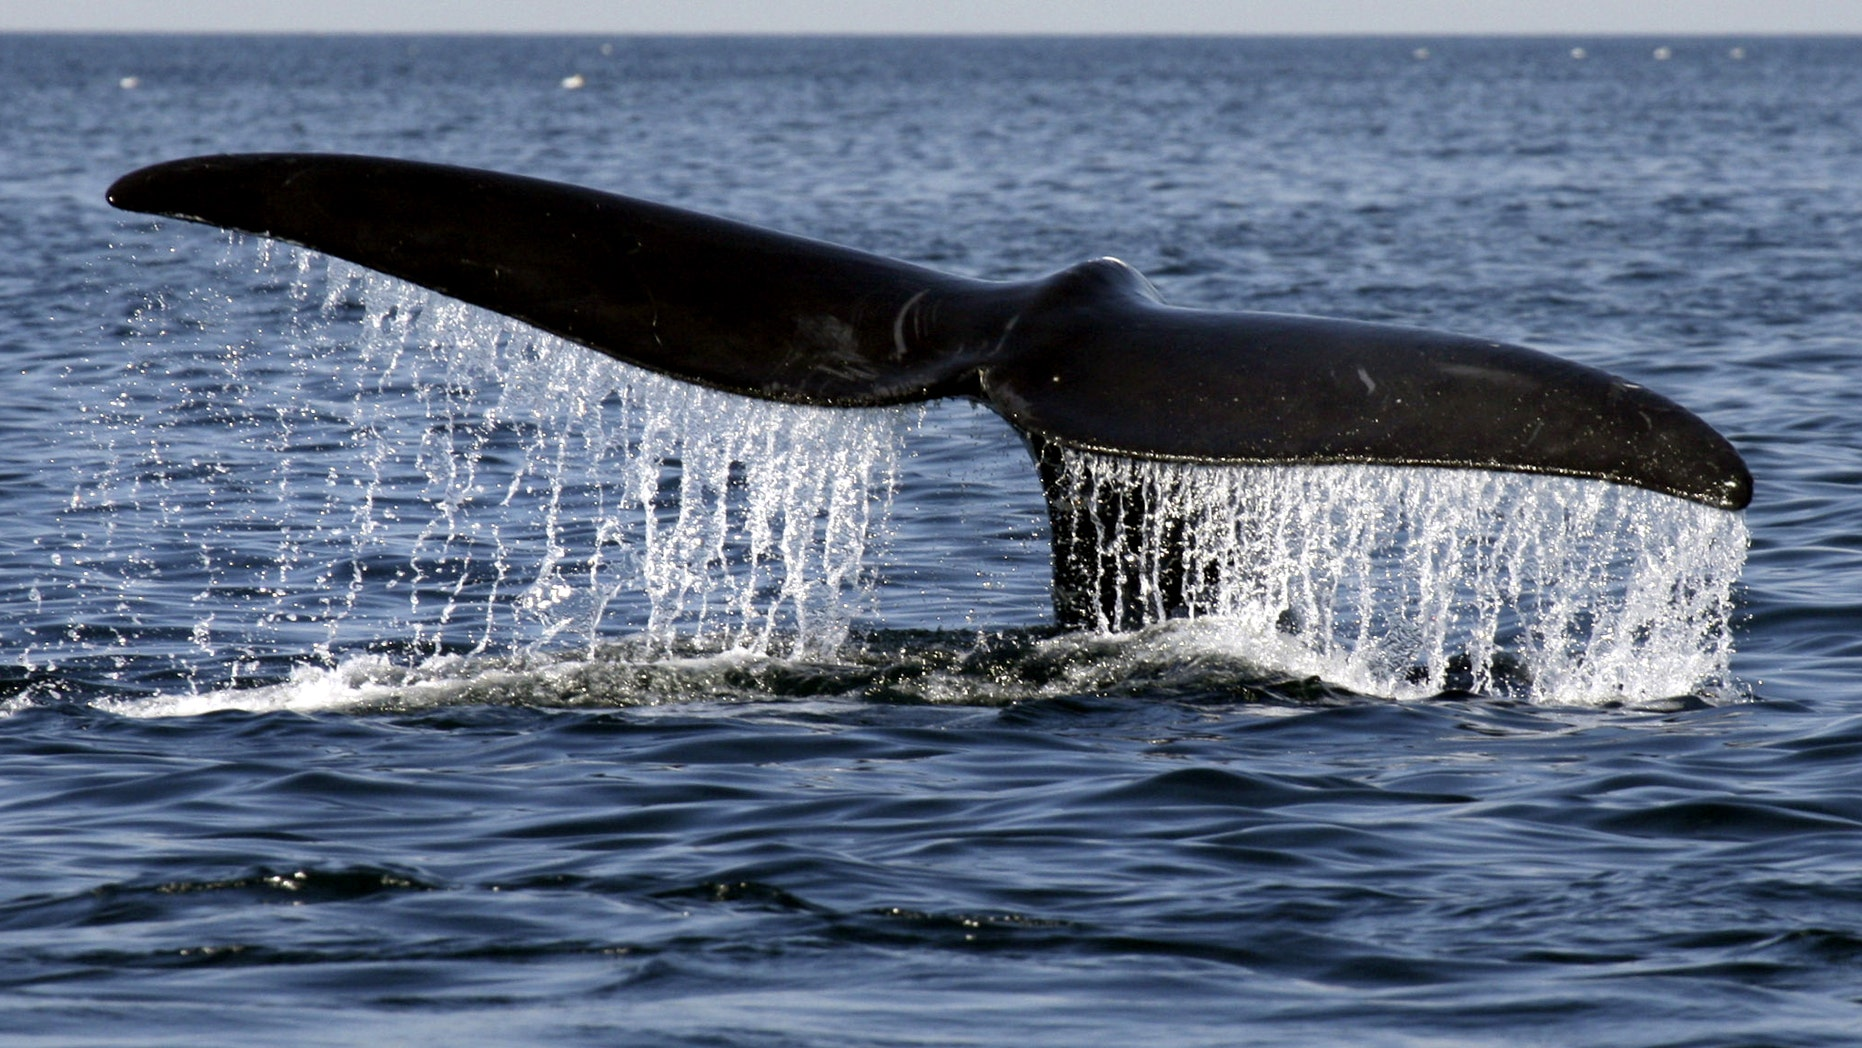 A North Atlantic right whale descends into Cape Cod Bay off the coast of Provincetown, Mass., Monday, April 12, 2010.